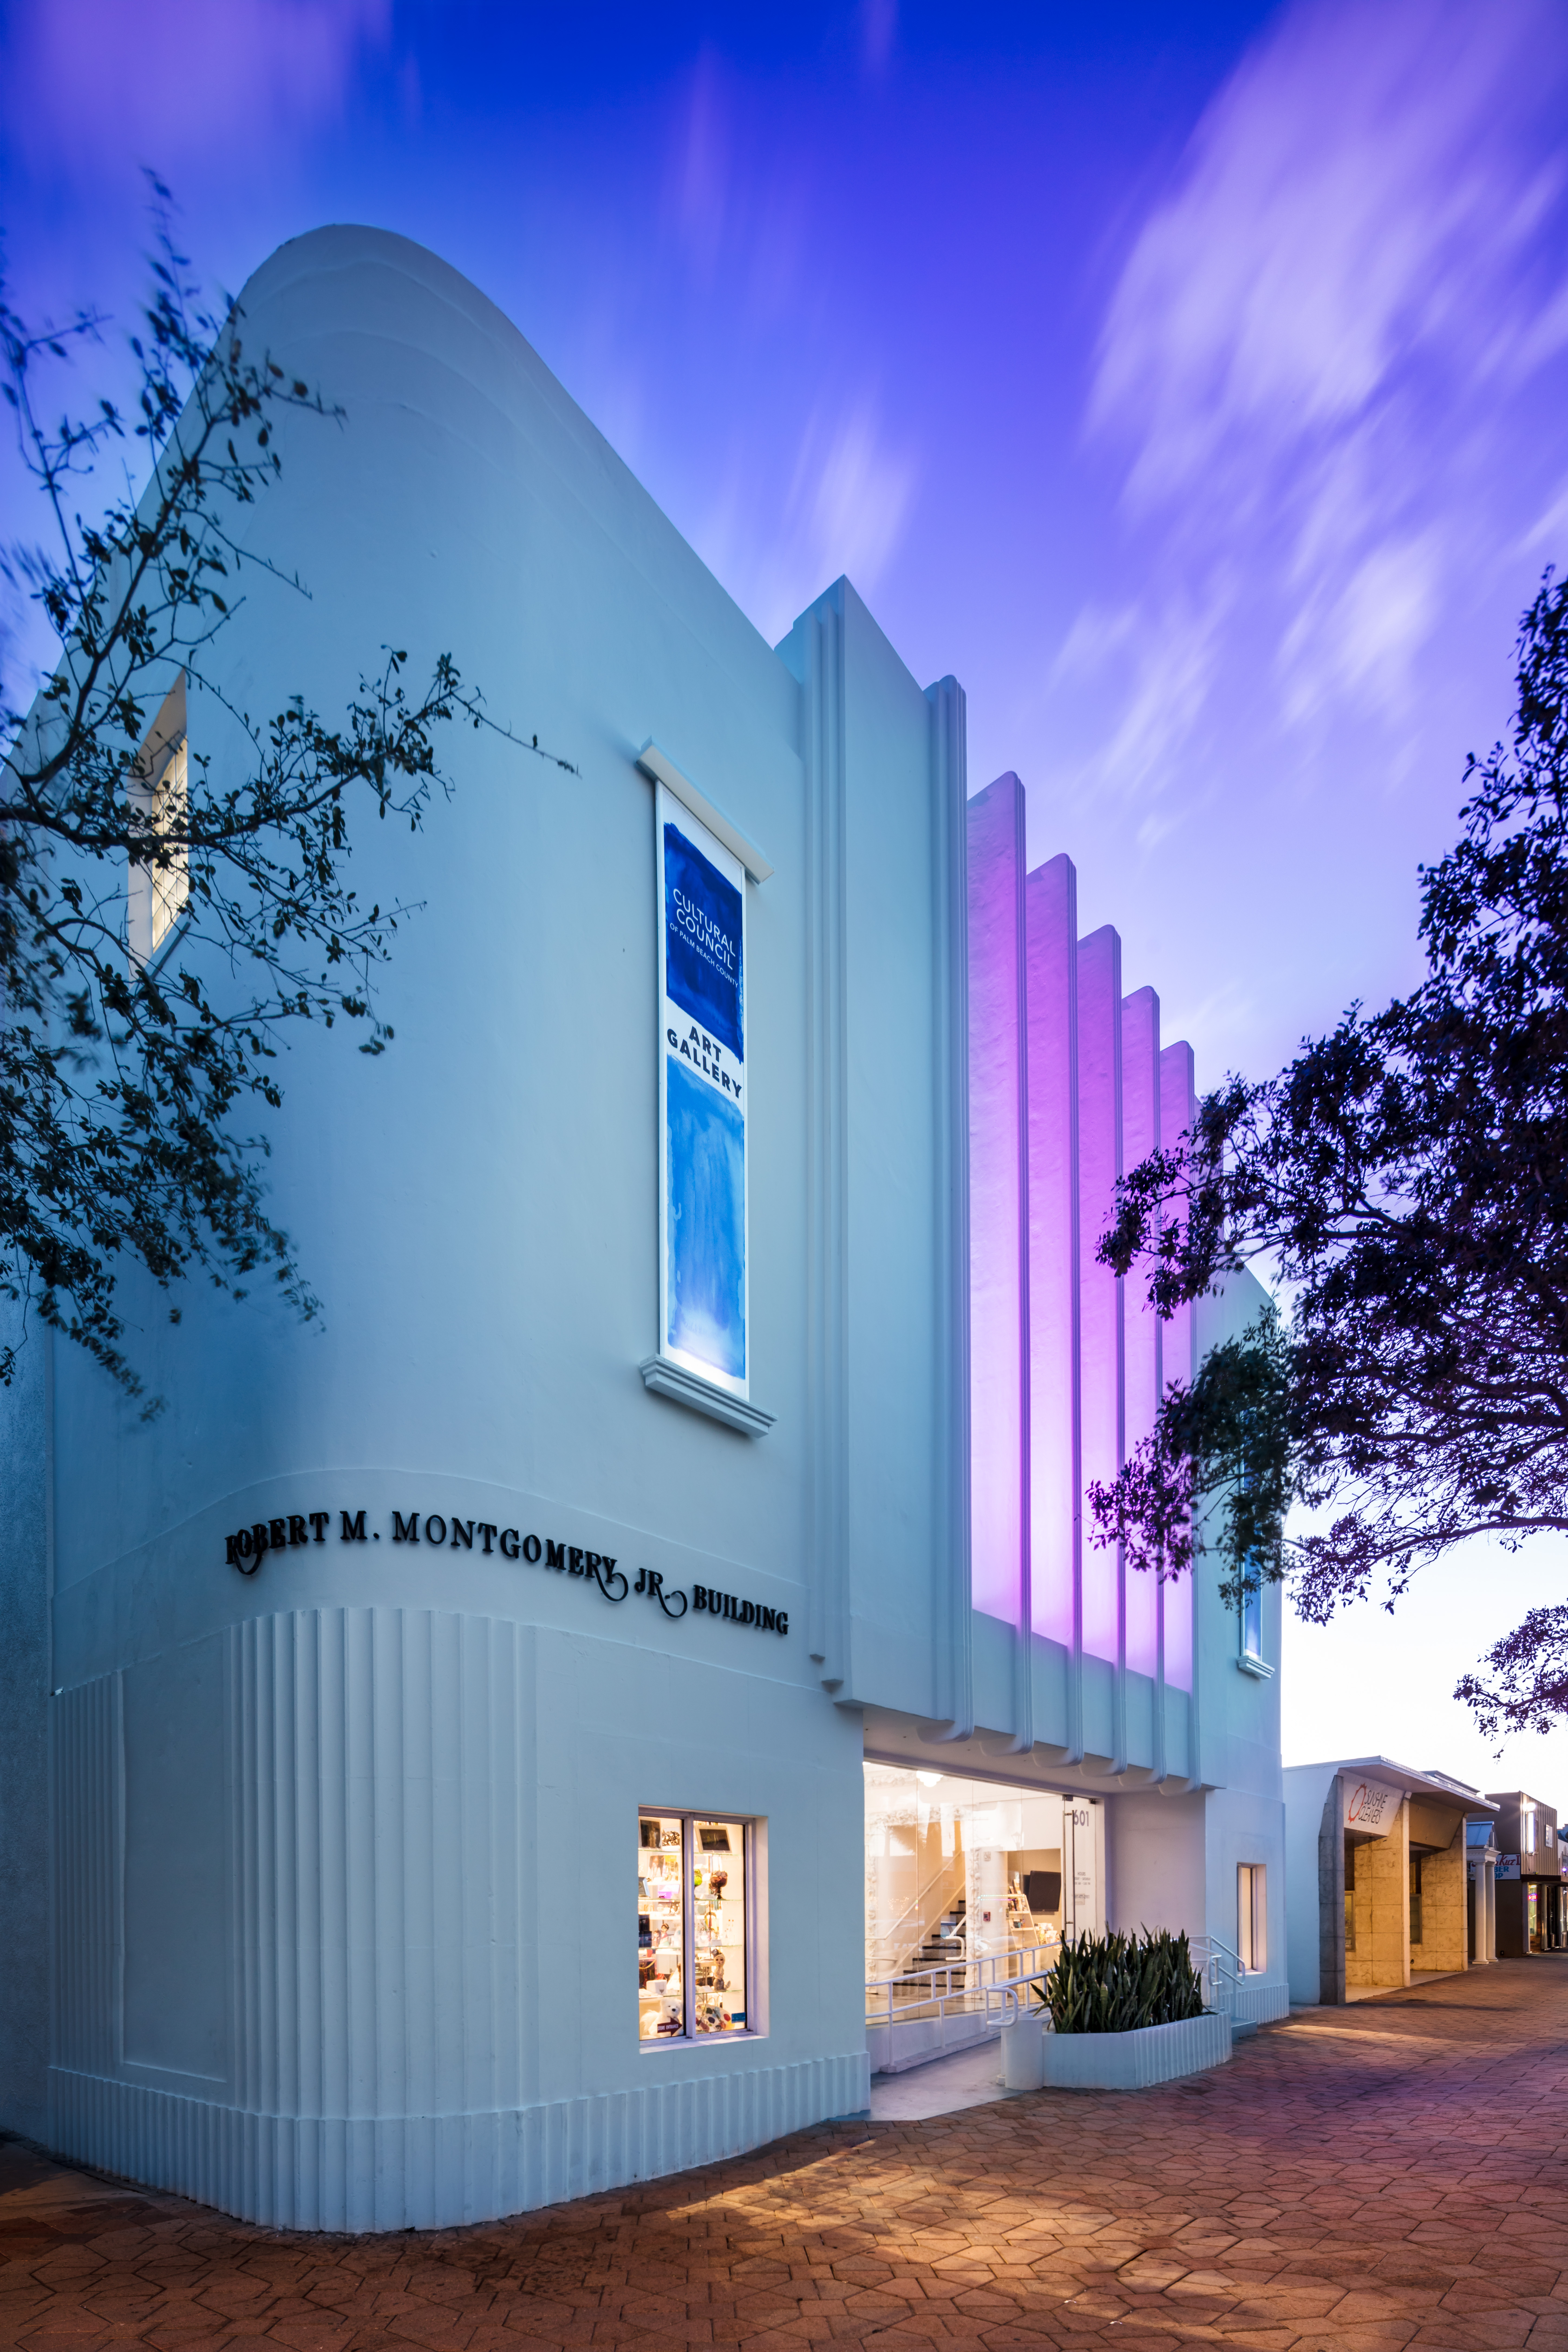 Evening photo of art deco facade of Cultural Council building in Lake Worth Florida with purple uplighting